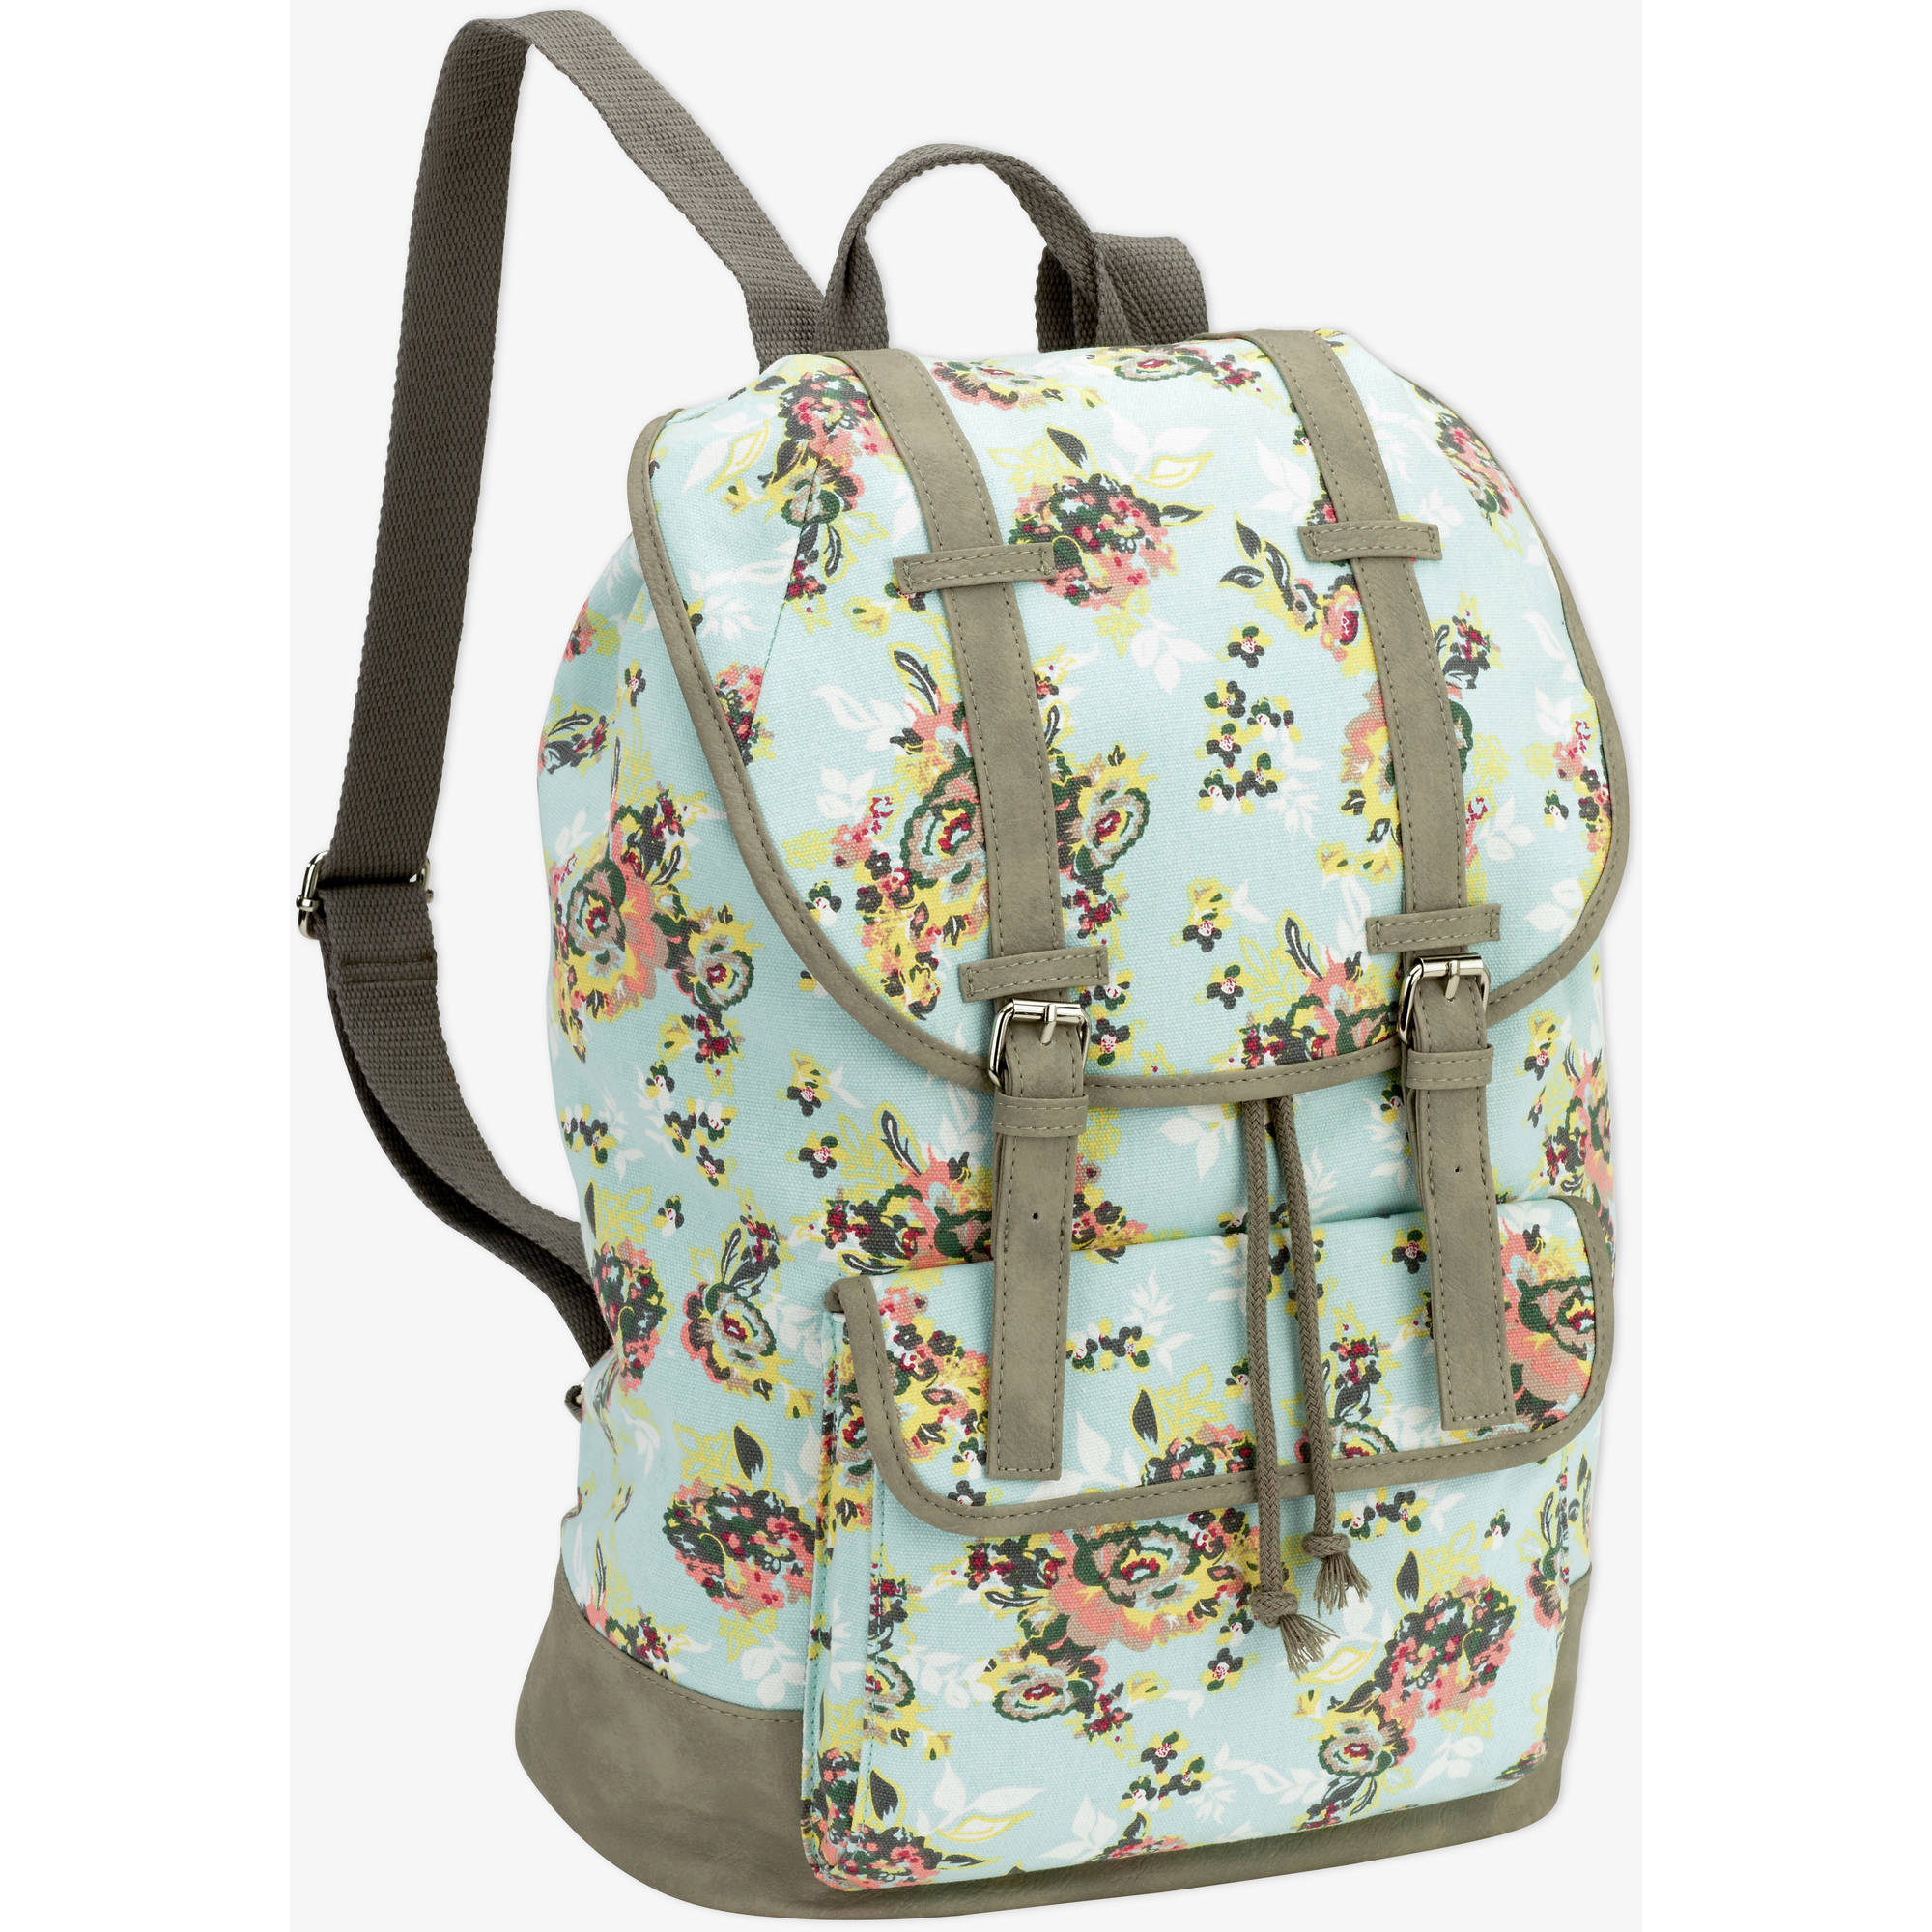 "No Boundaries 18"" Printed Canvas  Double Buckle Flap Backpack"